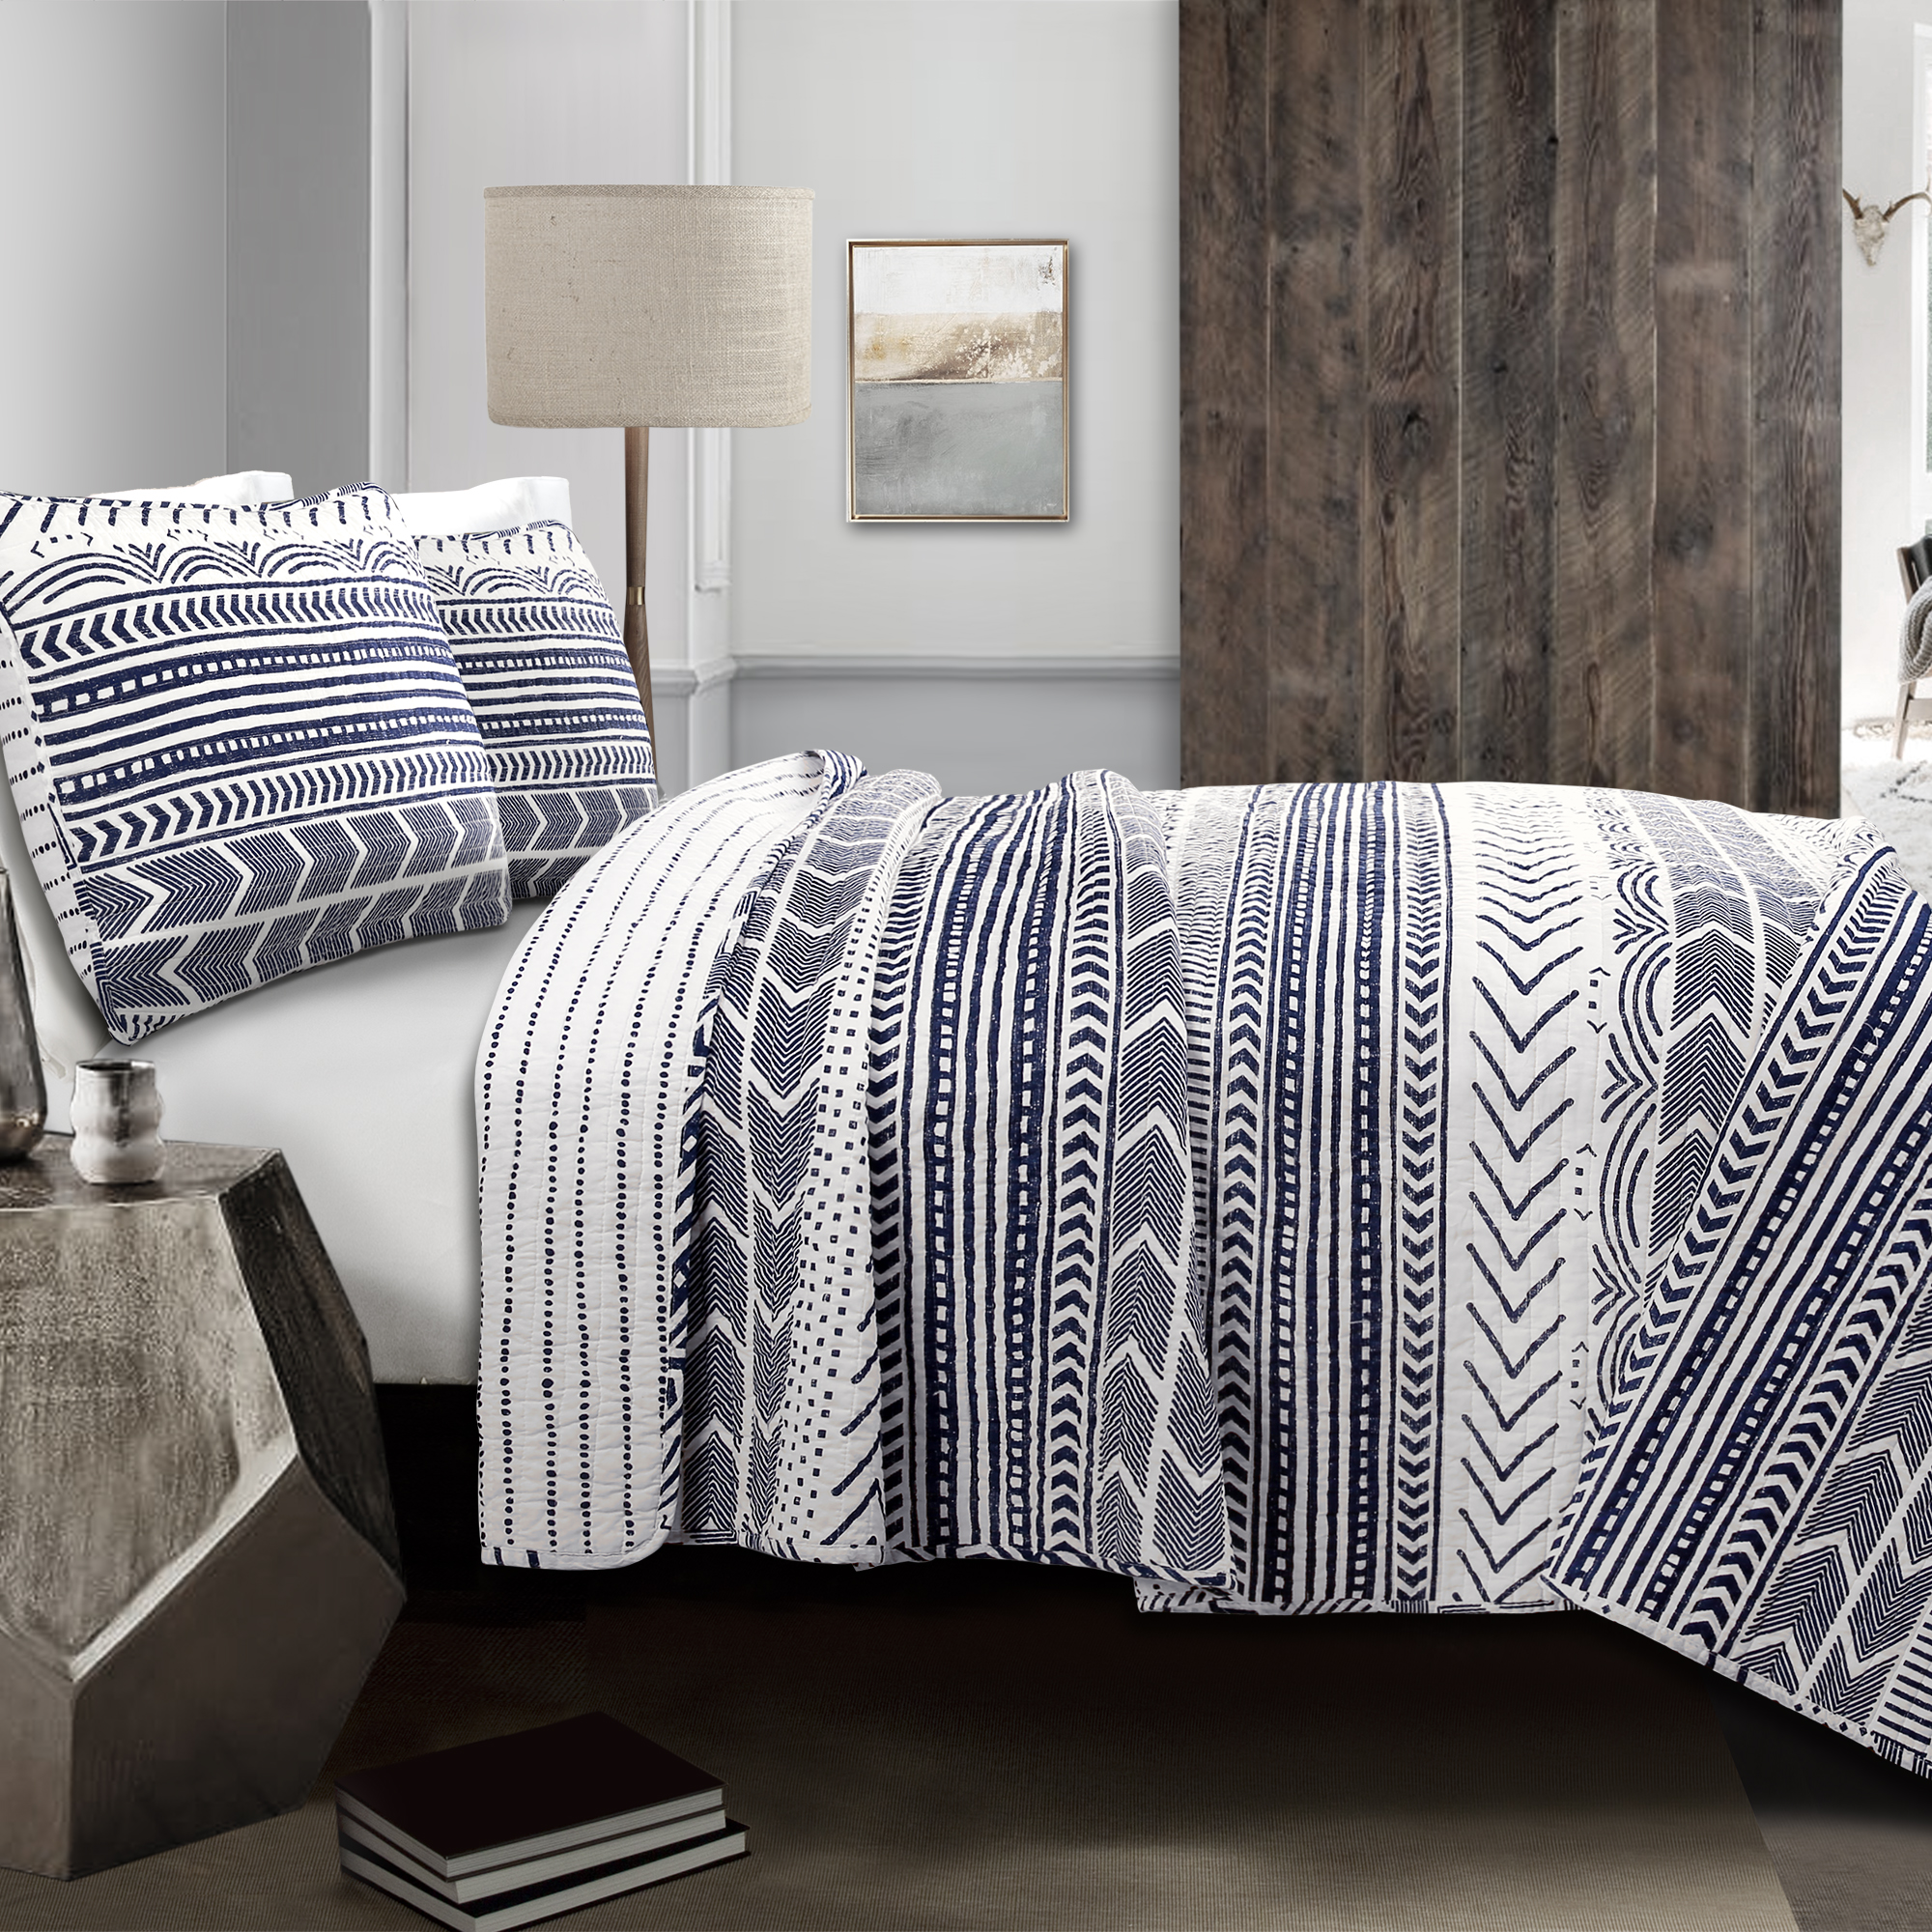 Hygge Geo Quilt Navy/White 3Pc Set Full/Queen